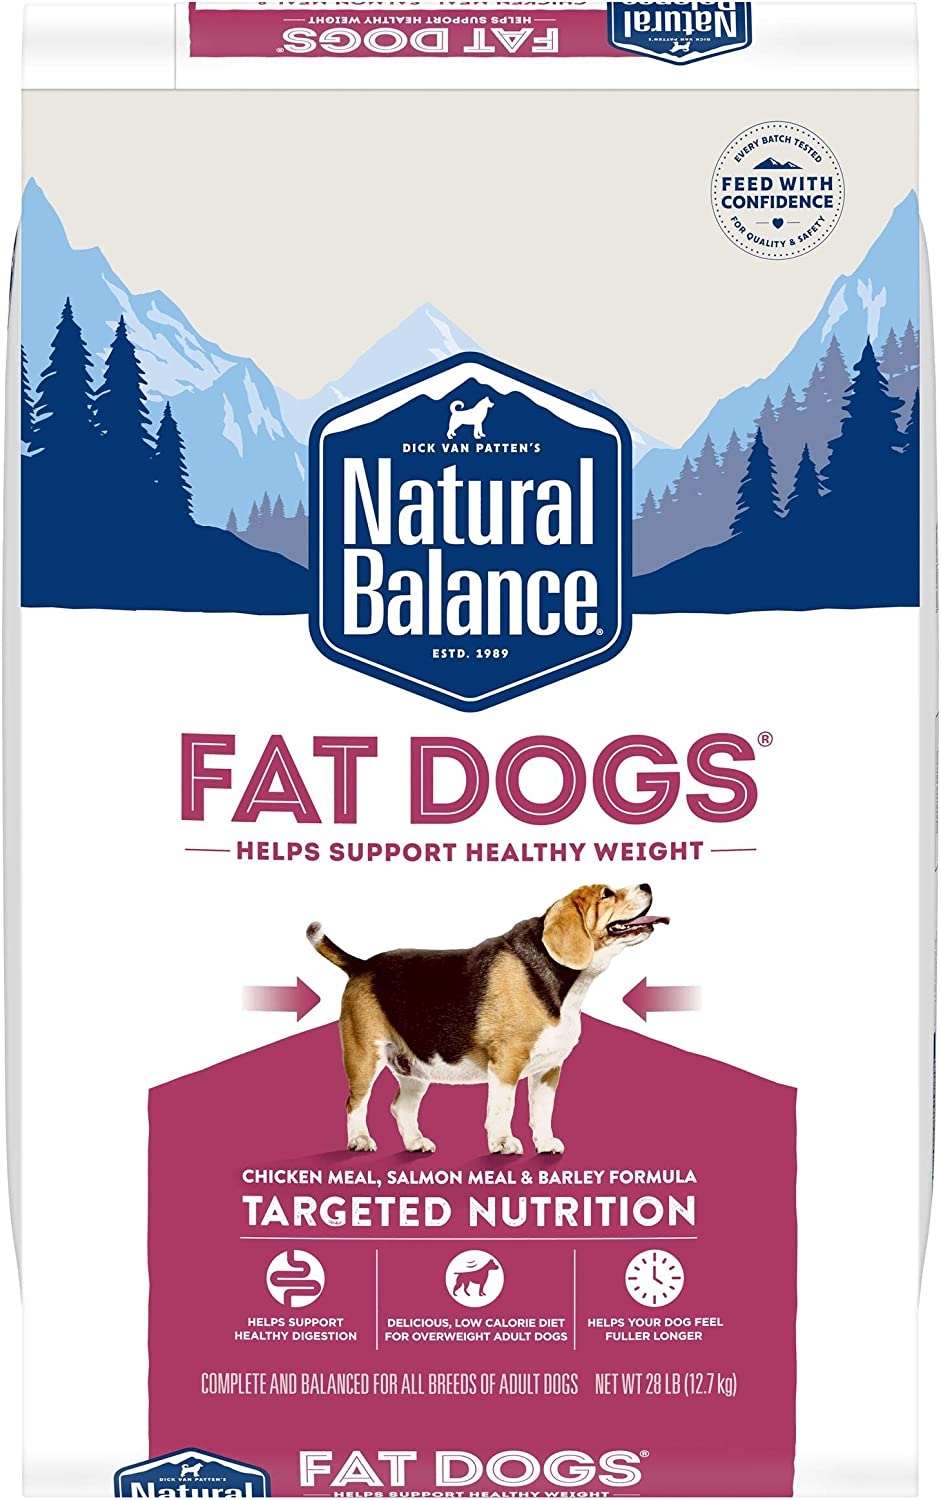 Natural Balance Fat Dogs Low Calorie Dry Dog Food for Overweight Adult Dogs (Packaging May Vary)